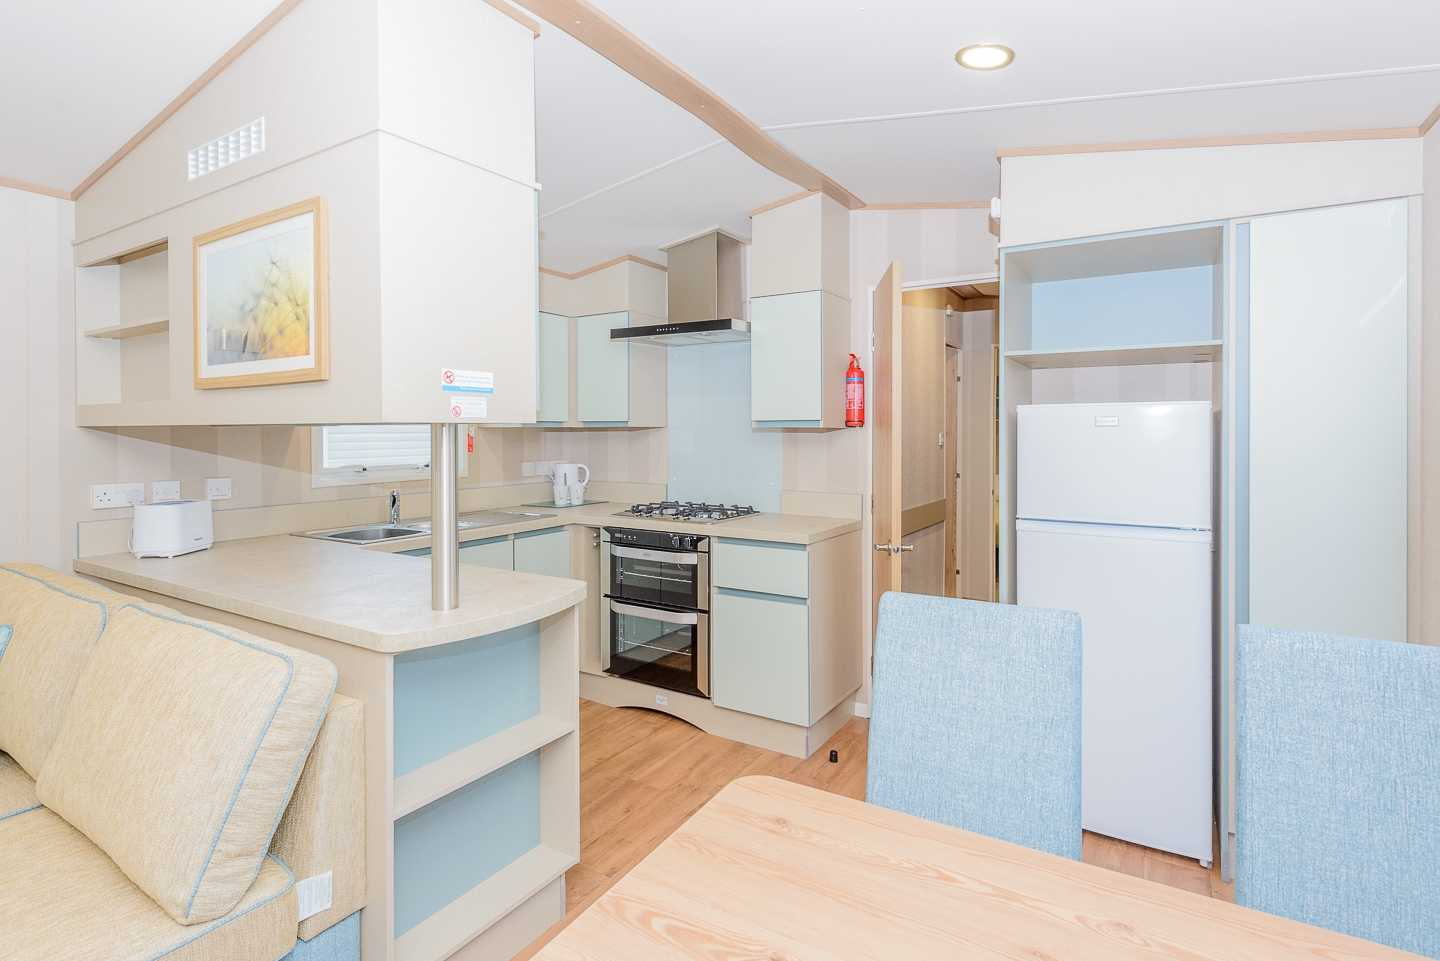 An example of the kitchen in a Prestige caravan